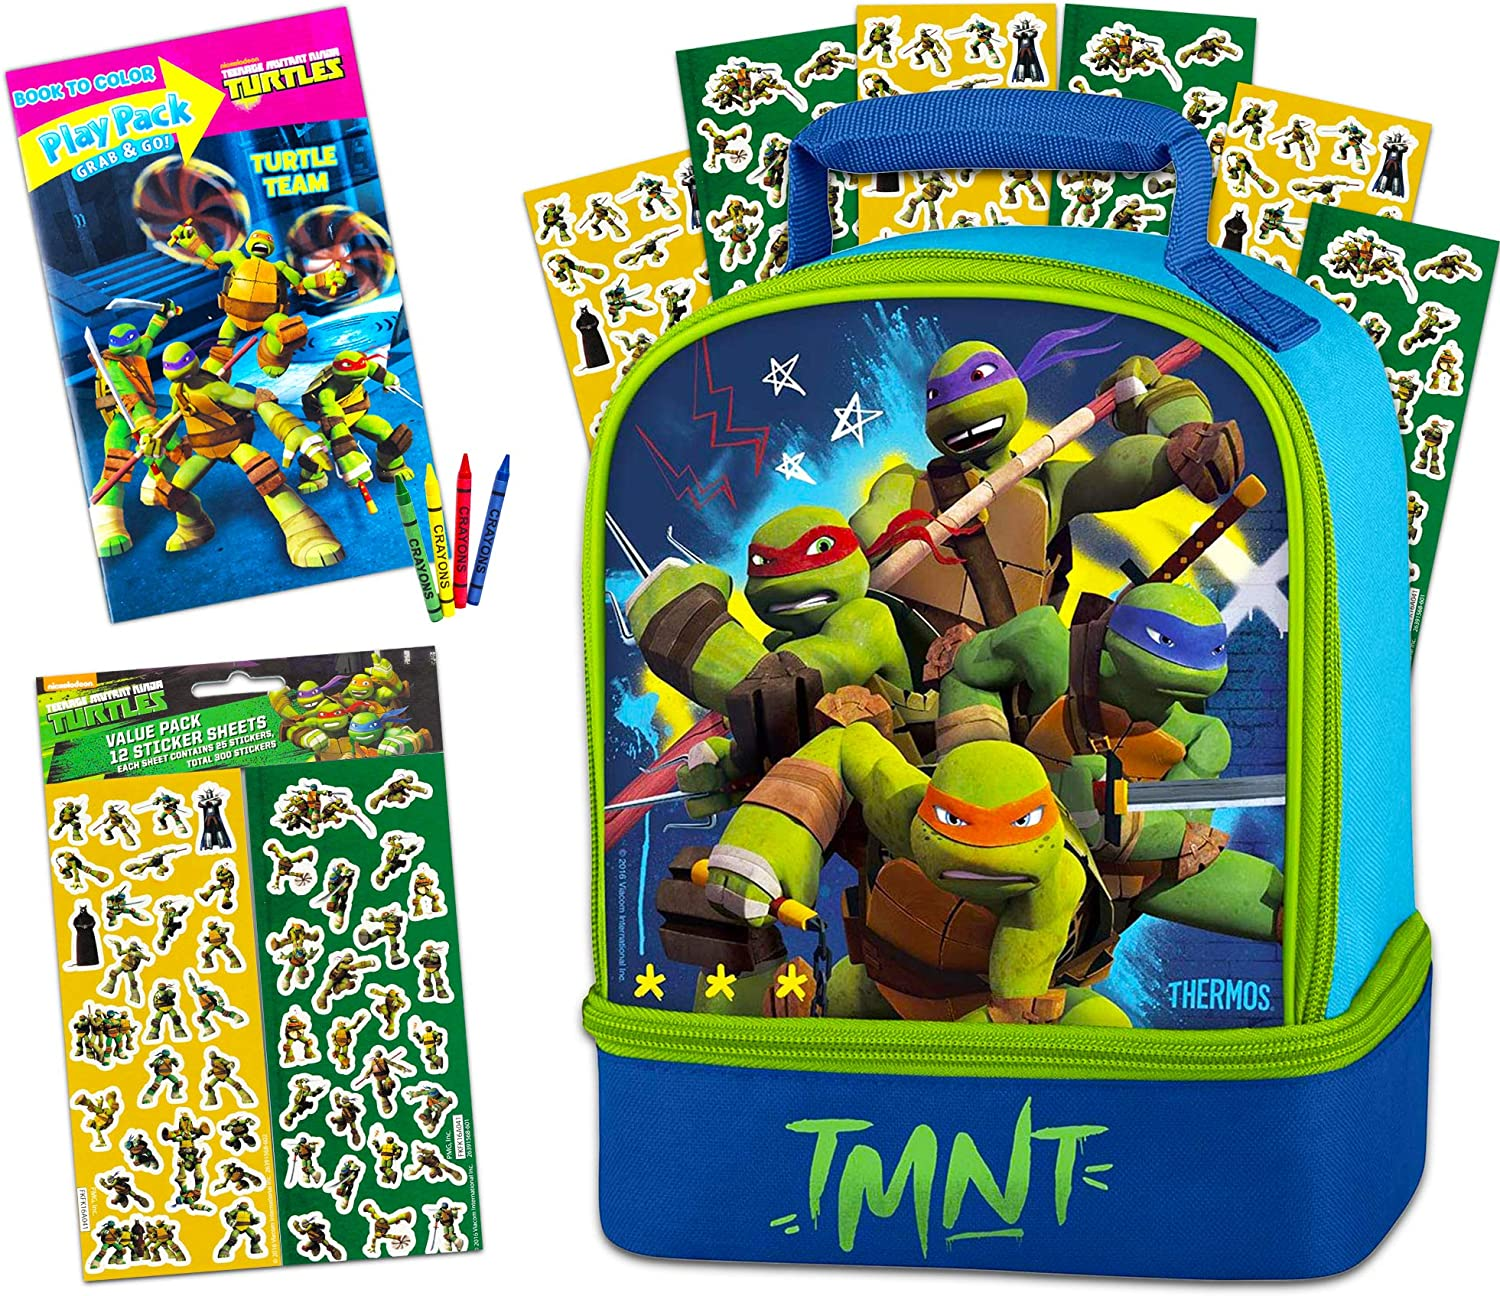 Thermos Teenage Mutant Ninja Turtles Lunch Box Set for Kids ~ 3 Part Bundle Includes Dual Compartment Insulated Lunch Box, 120 TMNT Stickers, and TMNT Coloring Book (Travel Kit for Kids)